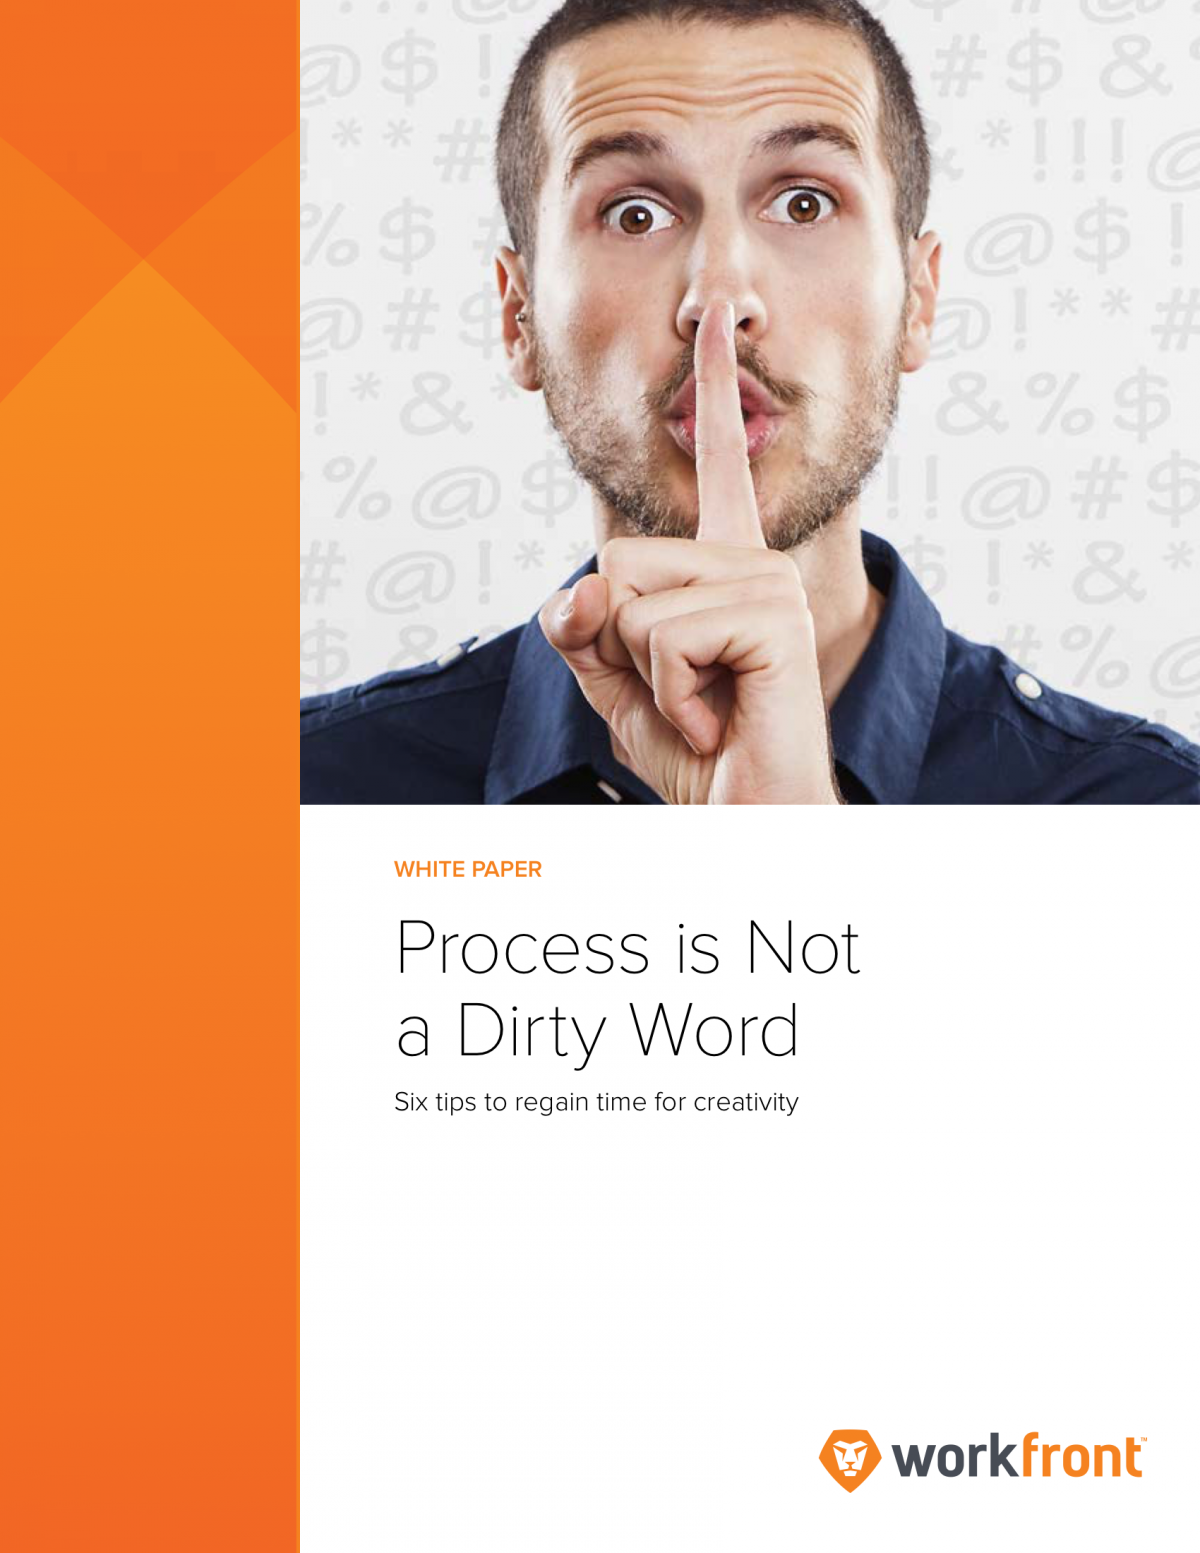 Process is Not a Dirty Word